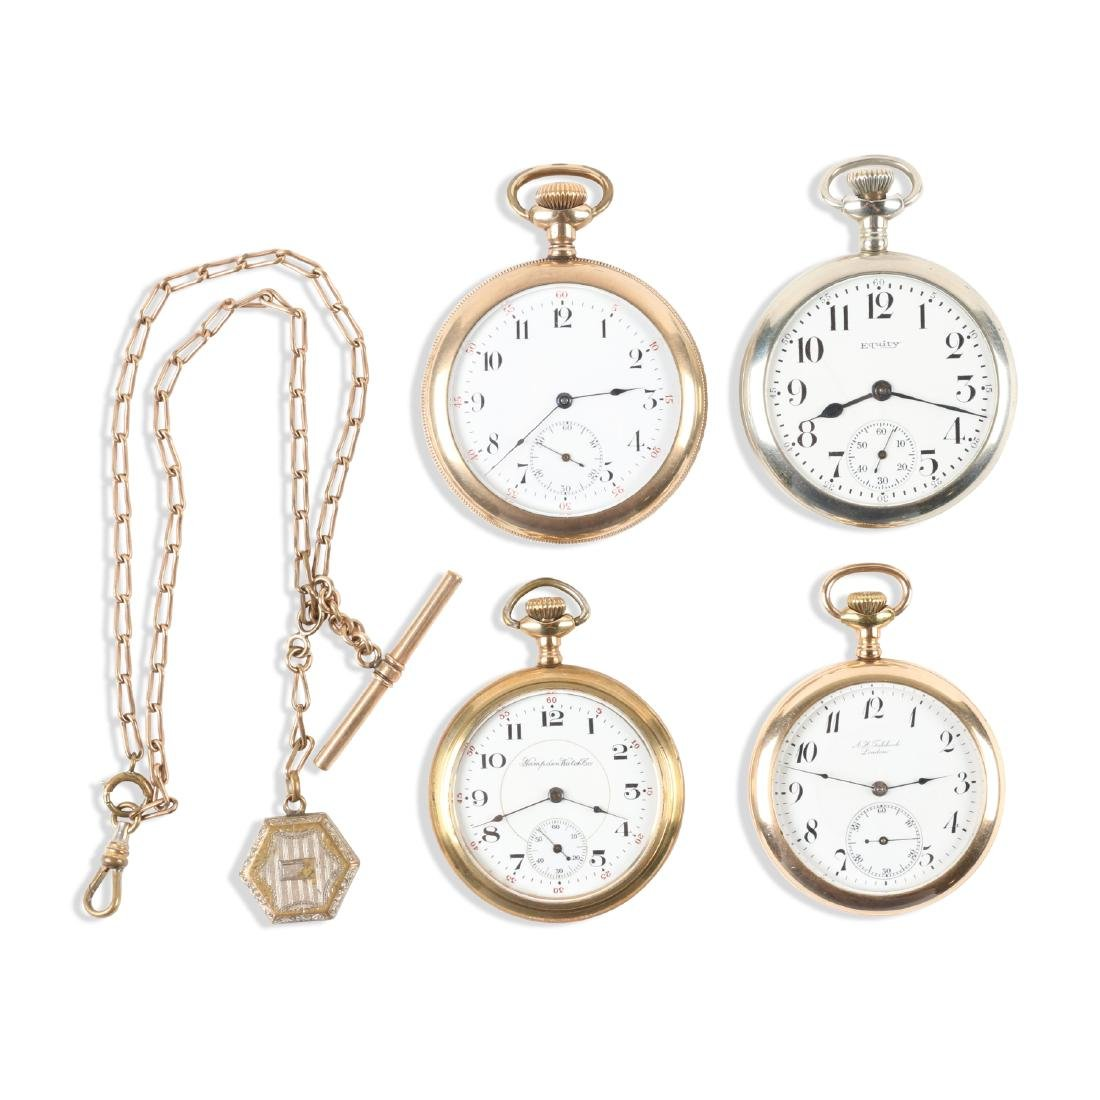 American, Open Face Pocket Watches